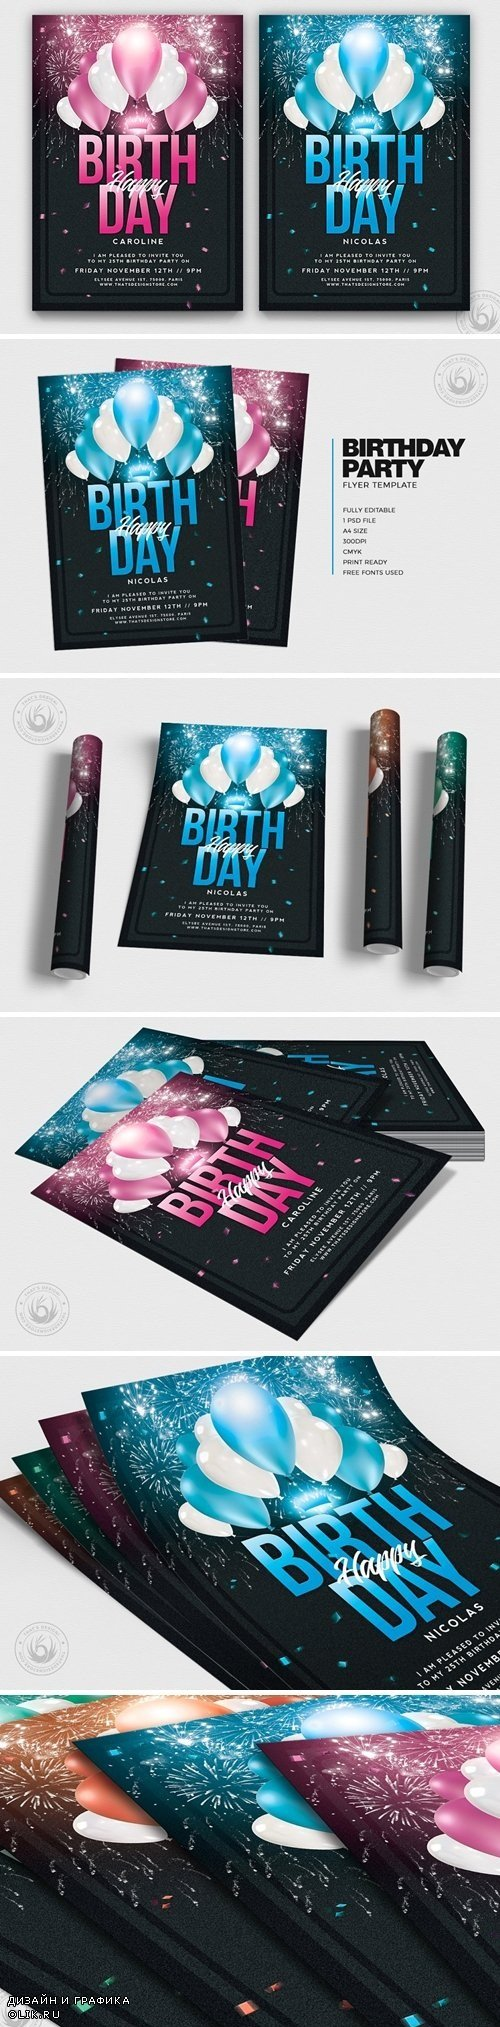 Birthday Party Flyer Template 3752670